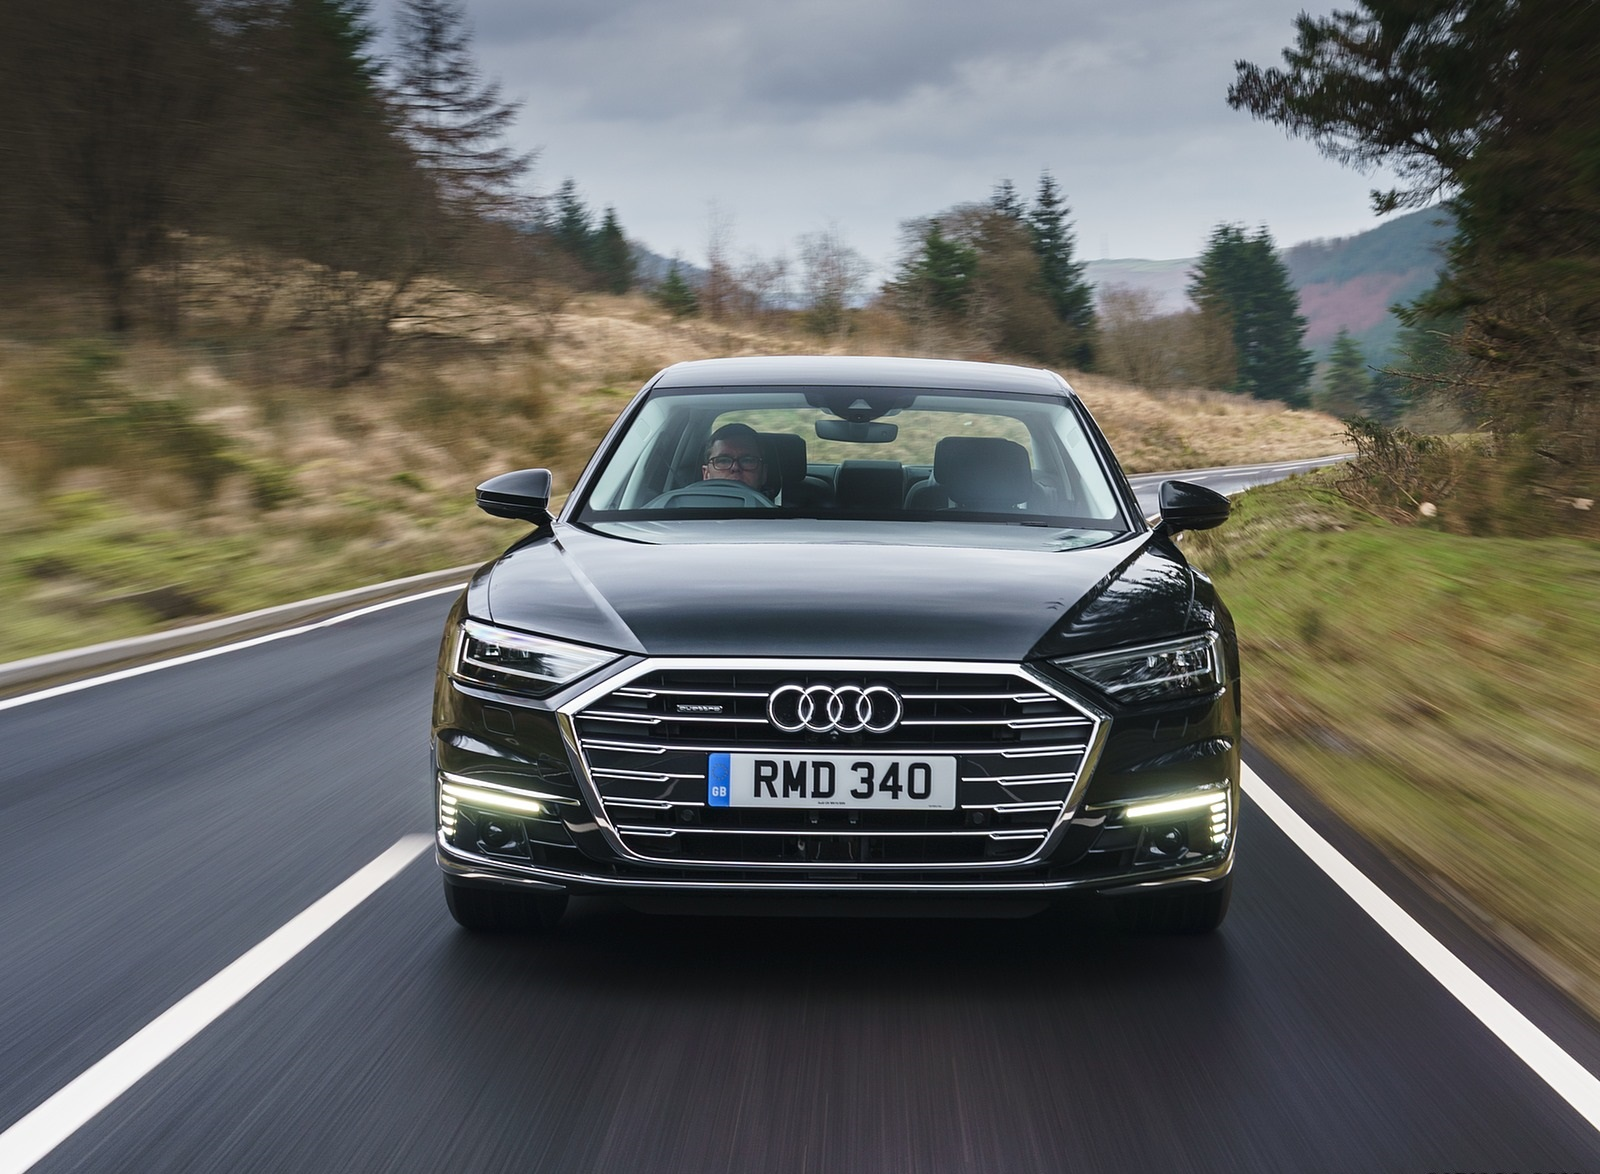 2020 Audi A8 L 60 TFSI e quattro (Plug-In Hybrid UK-Spec) Front Wallpapers (10)